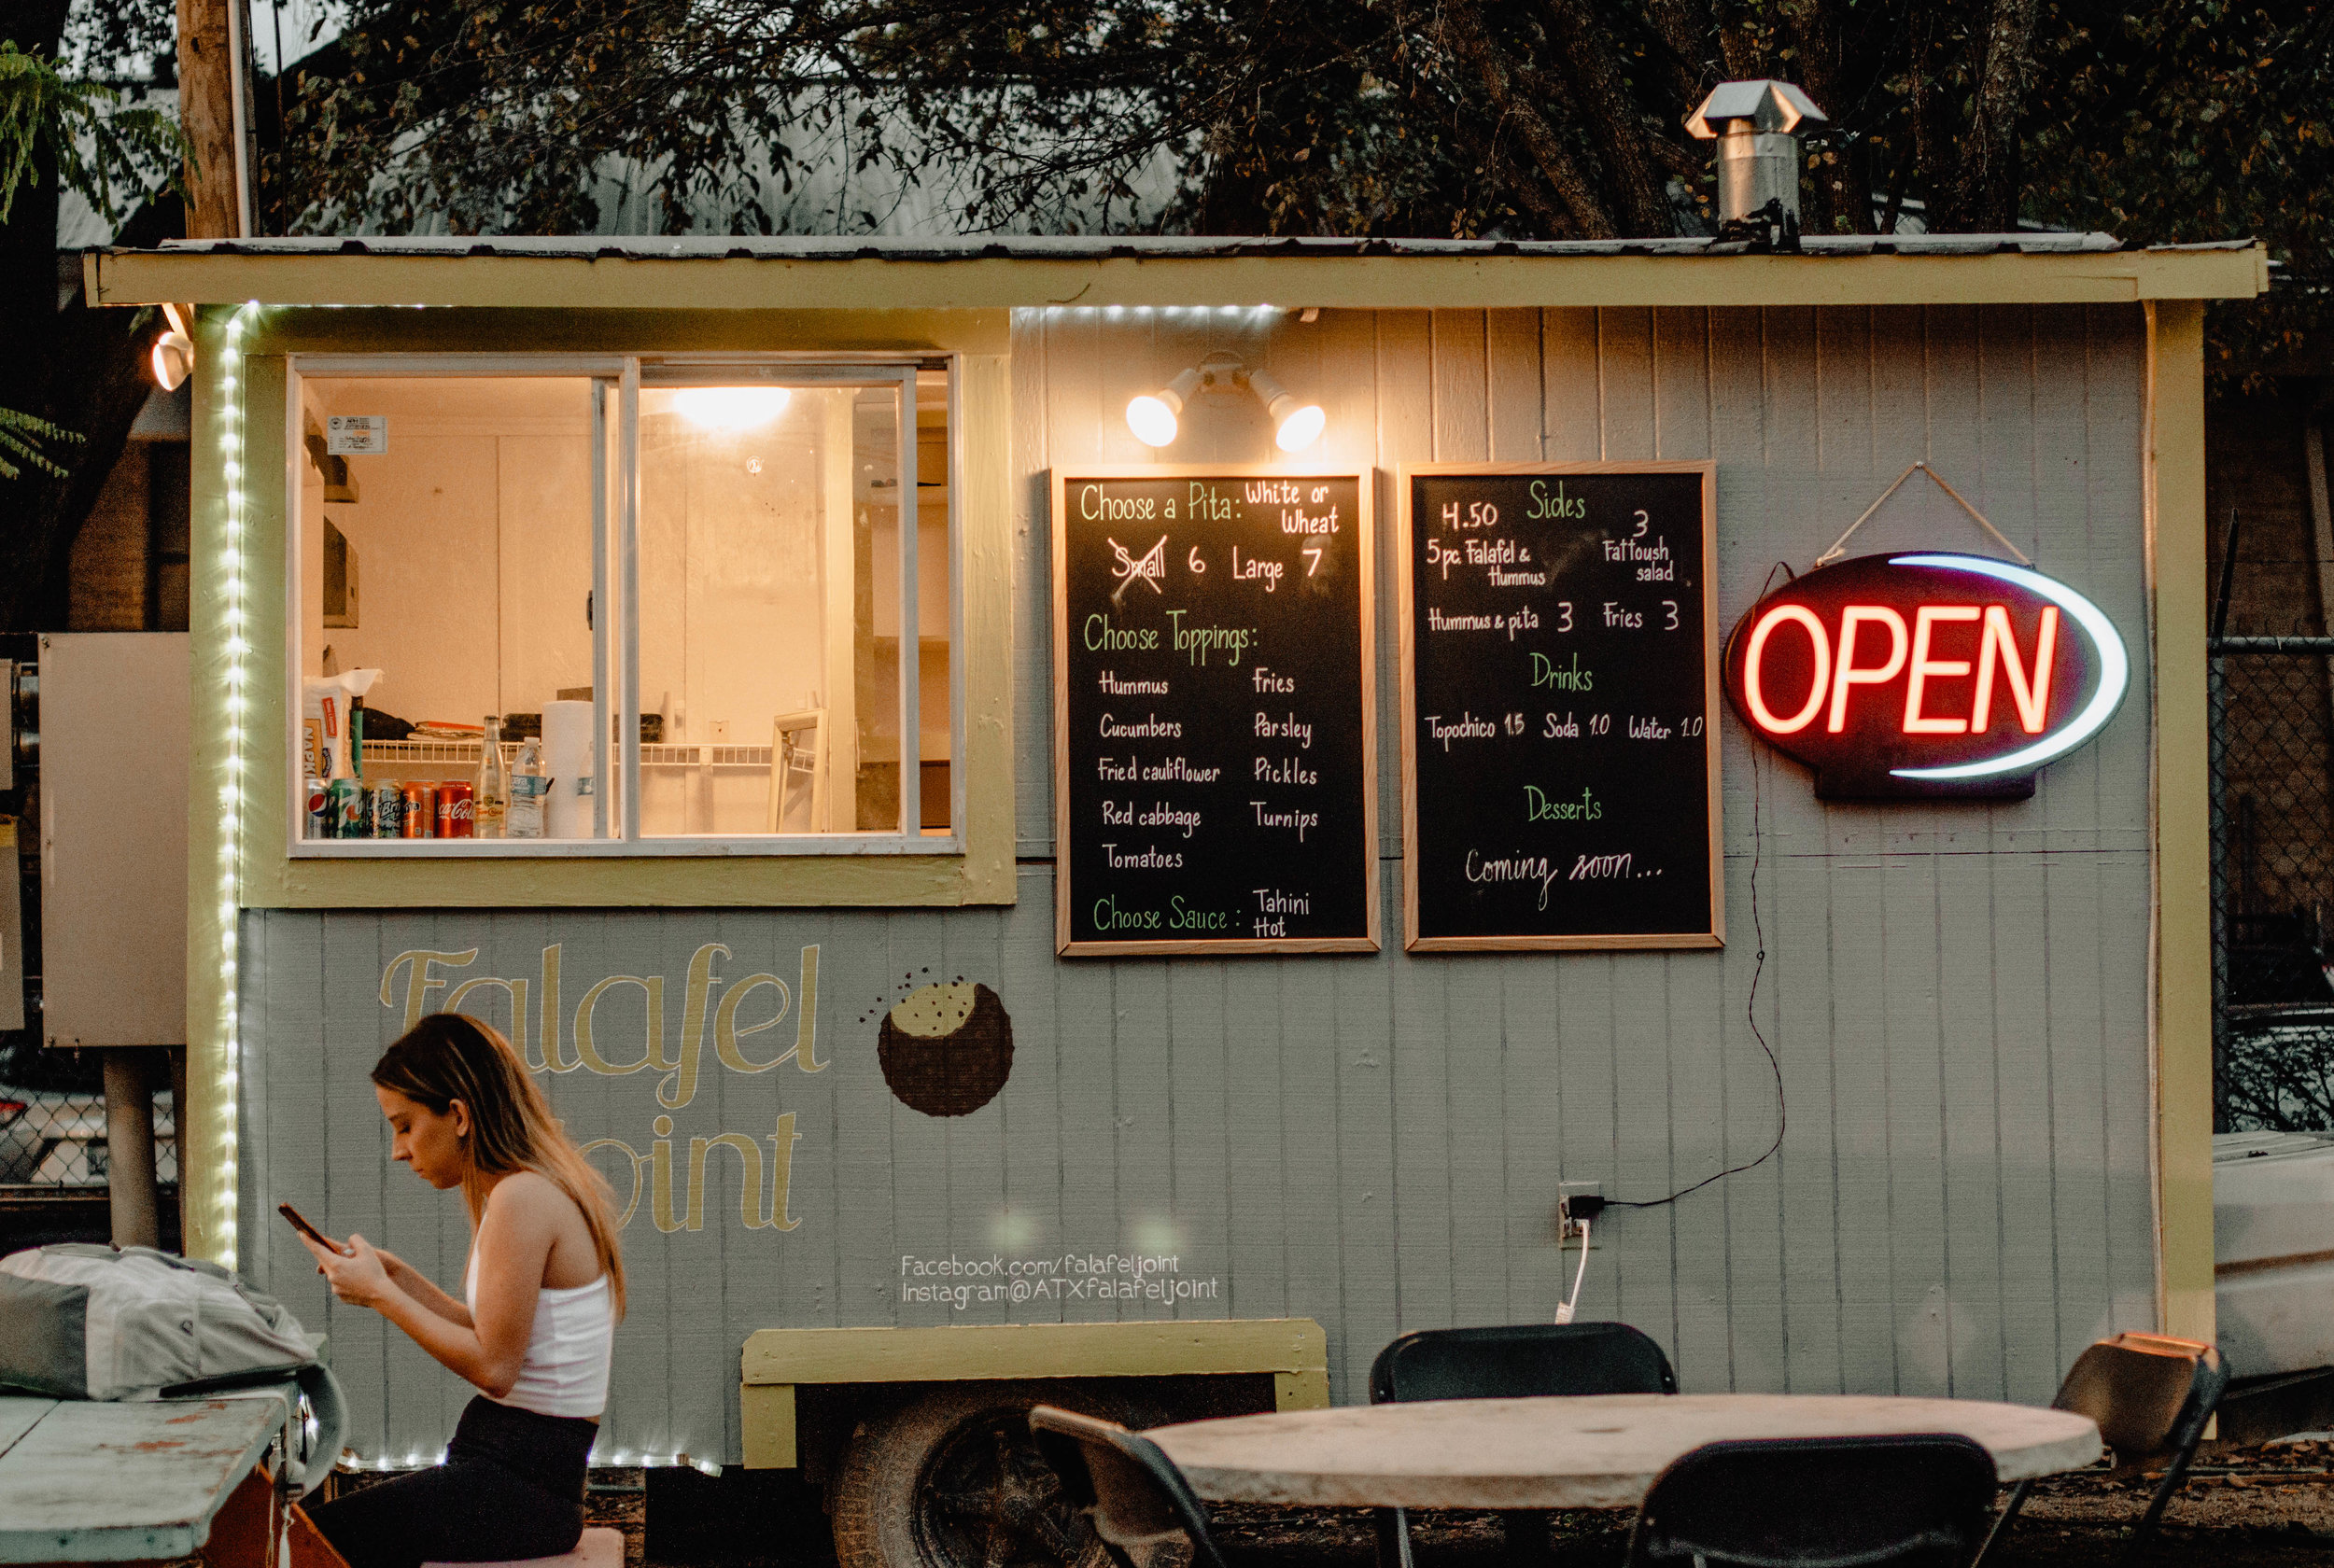 The Falafel Joint food truck is now open in West Campus.